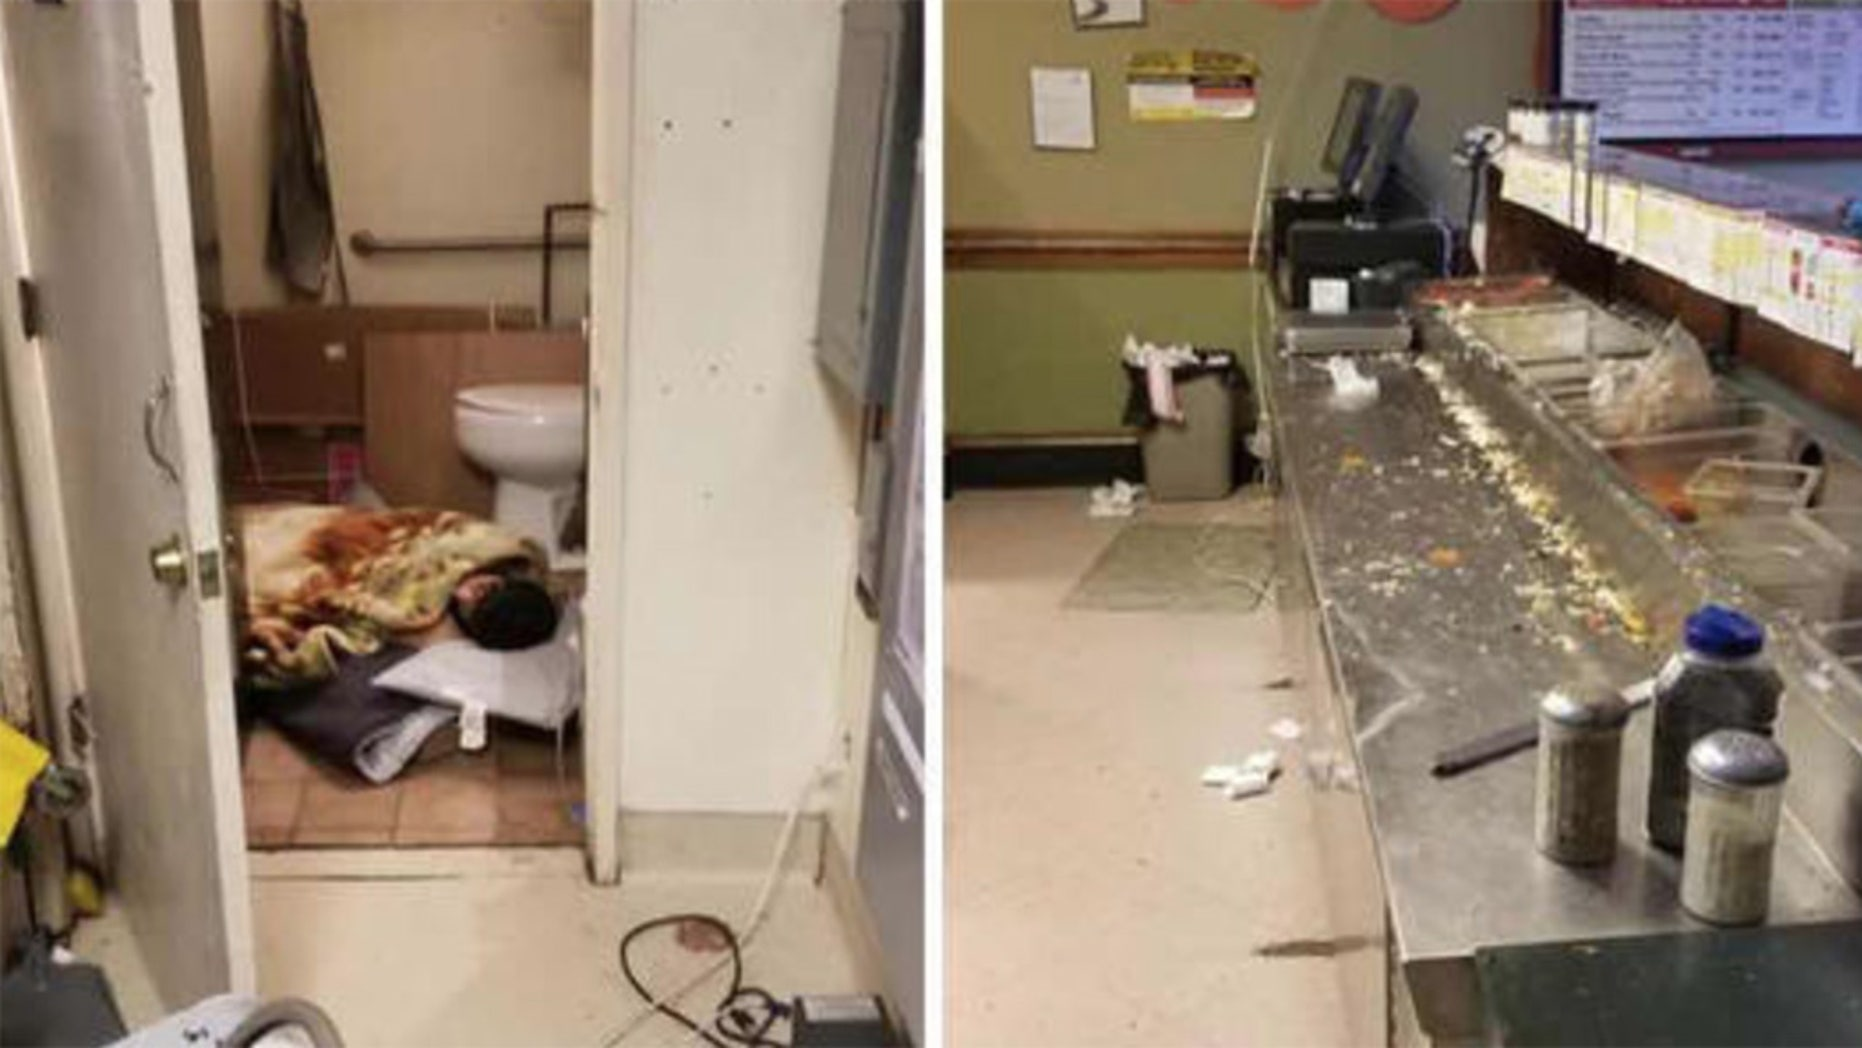 An anonymous customer captured the shocking images, which prompted the restaurant to be shut down.